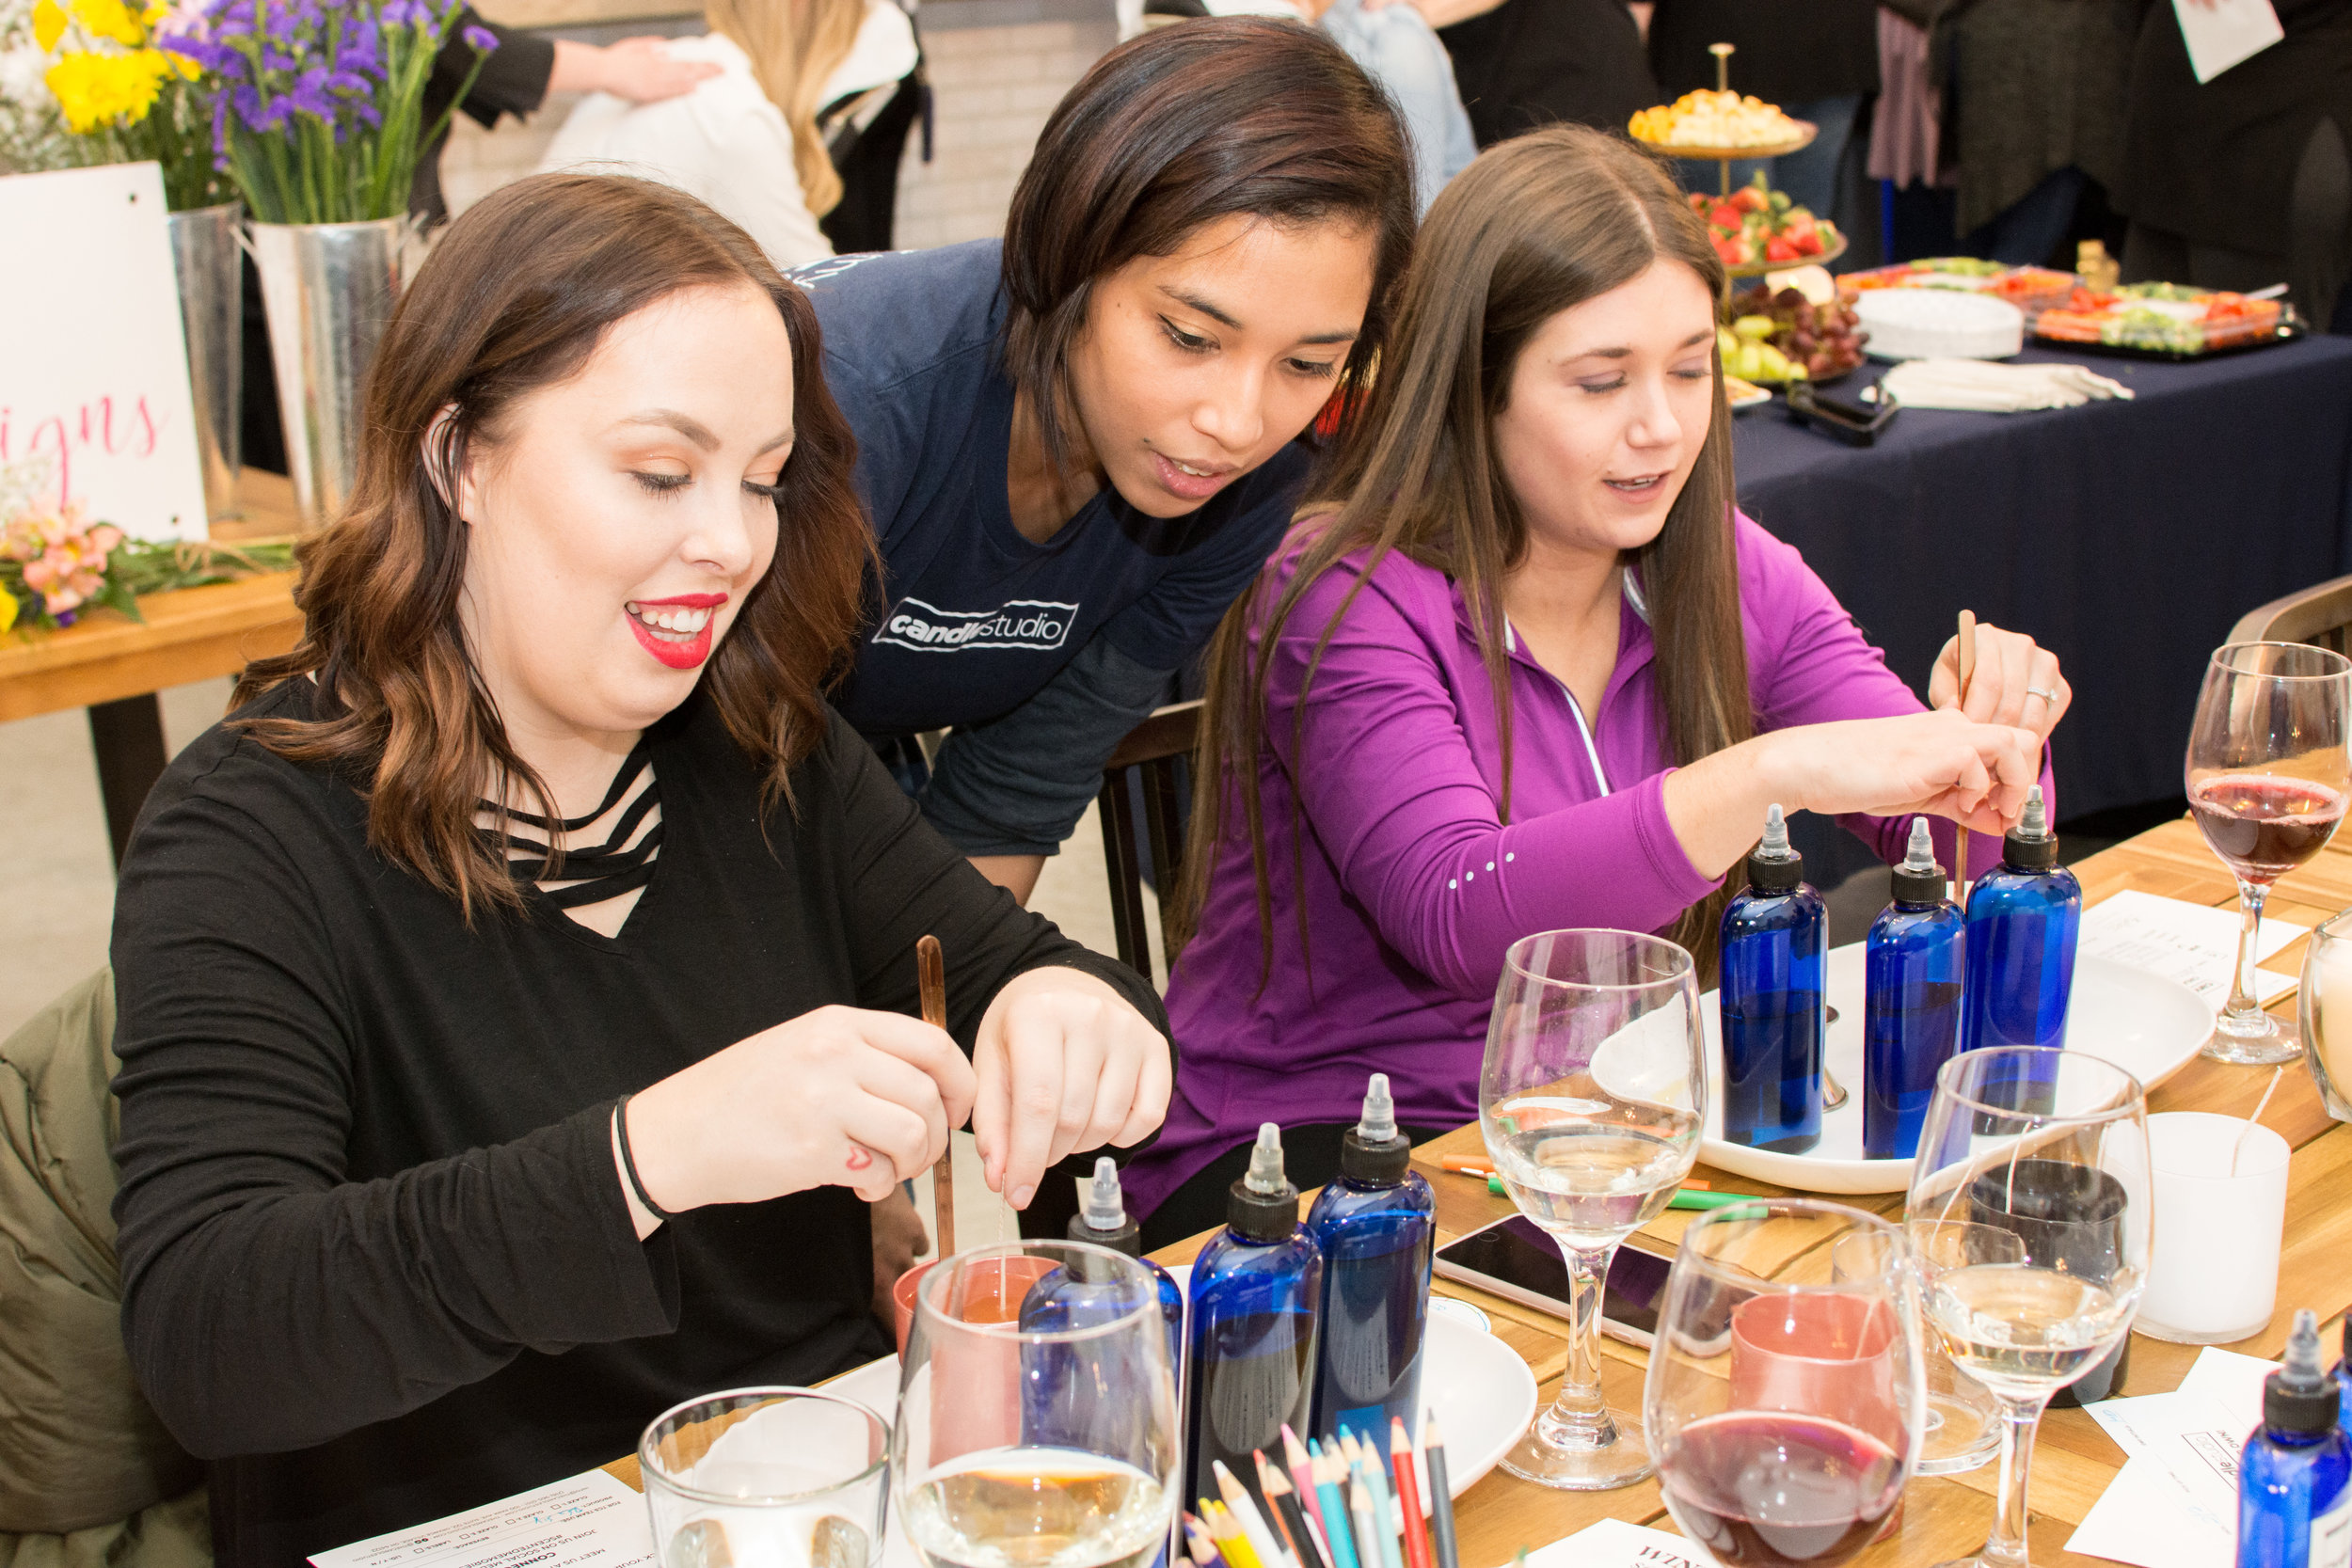 Our scent stylists will walk you and your group through the entire candle making process, making sure your experience is a memorable one.